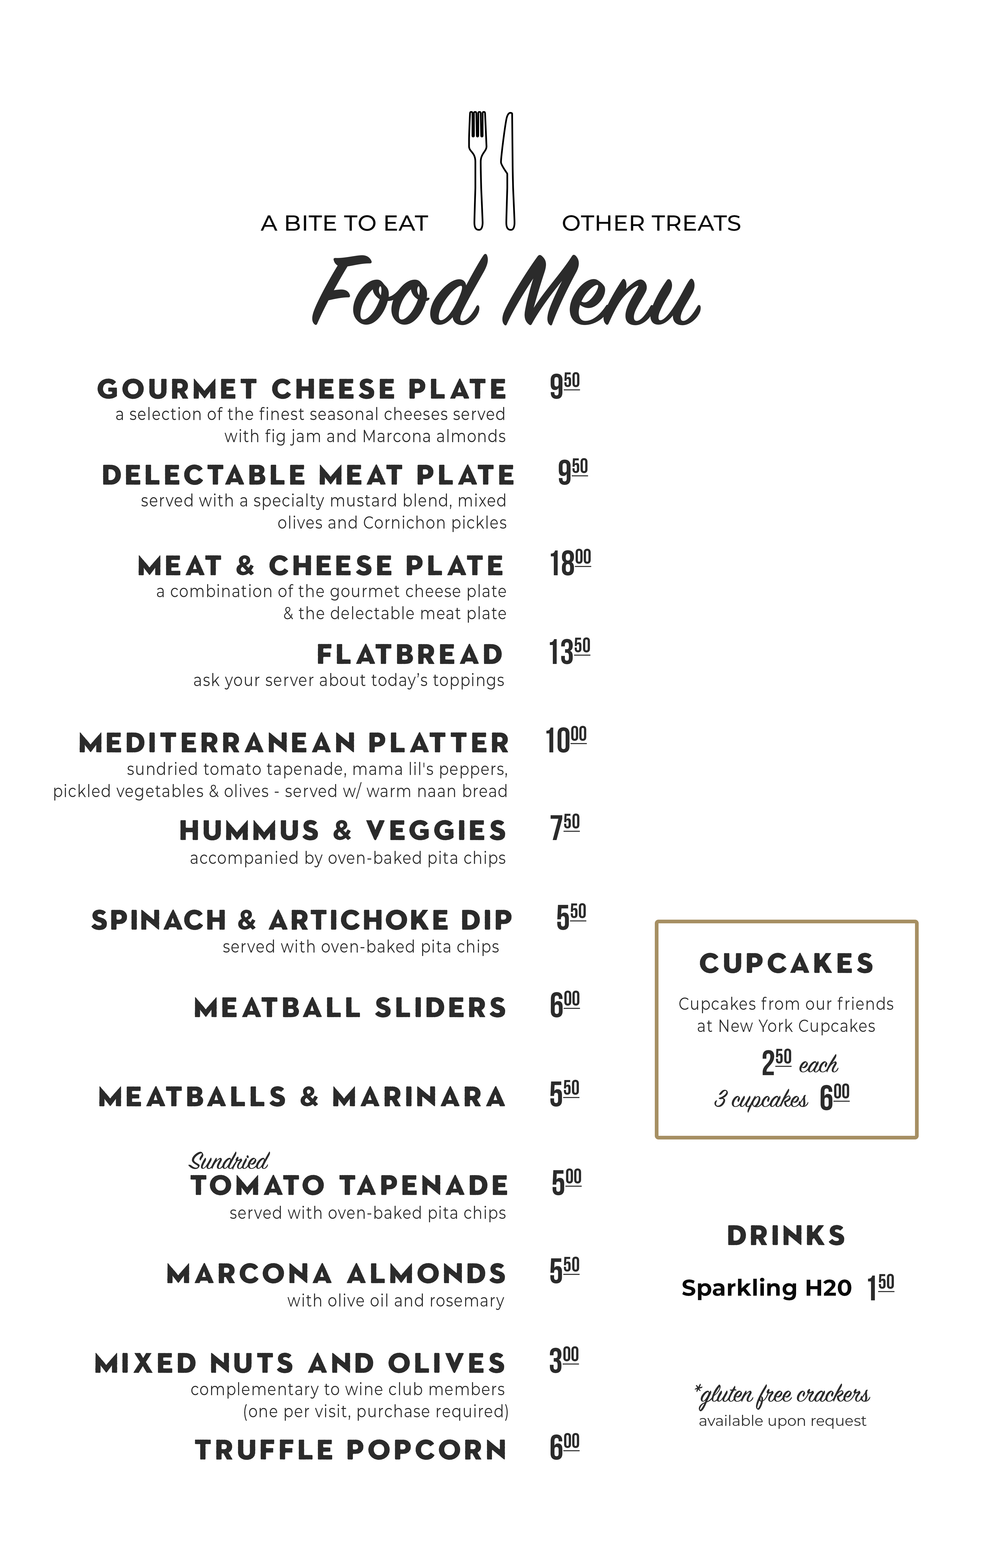 Maison DeLille Food Menu! Starting 8/13/2019